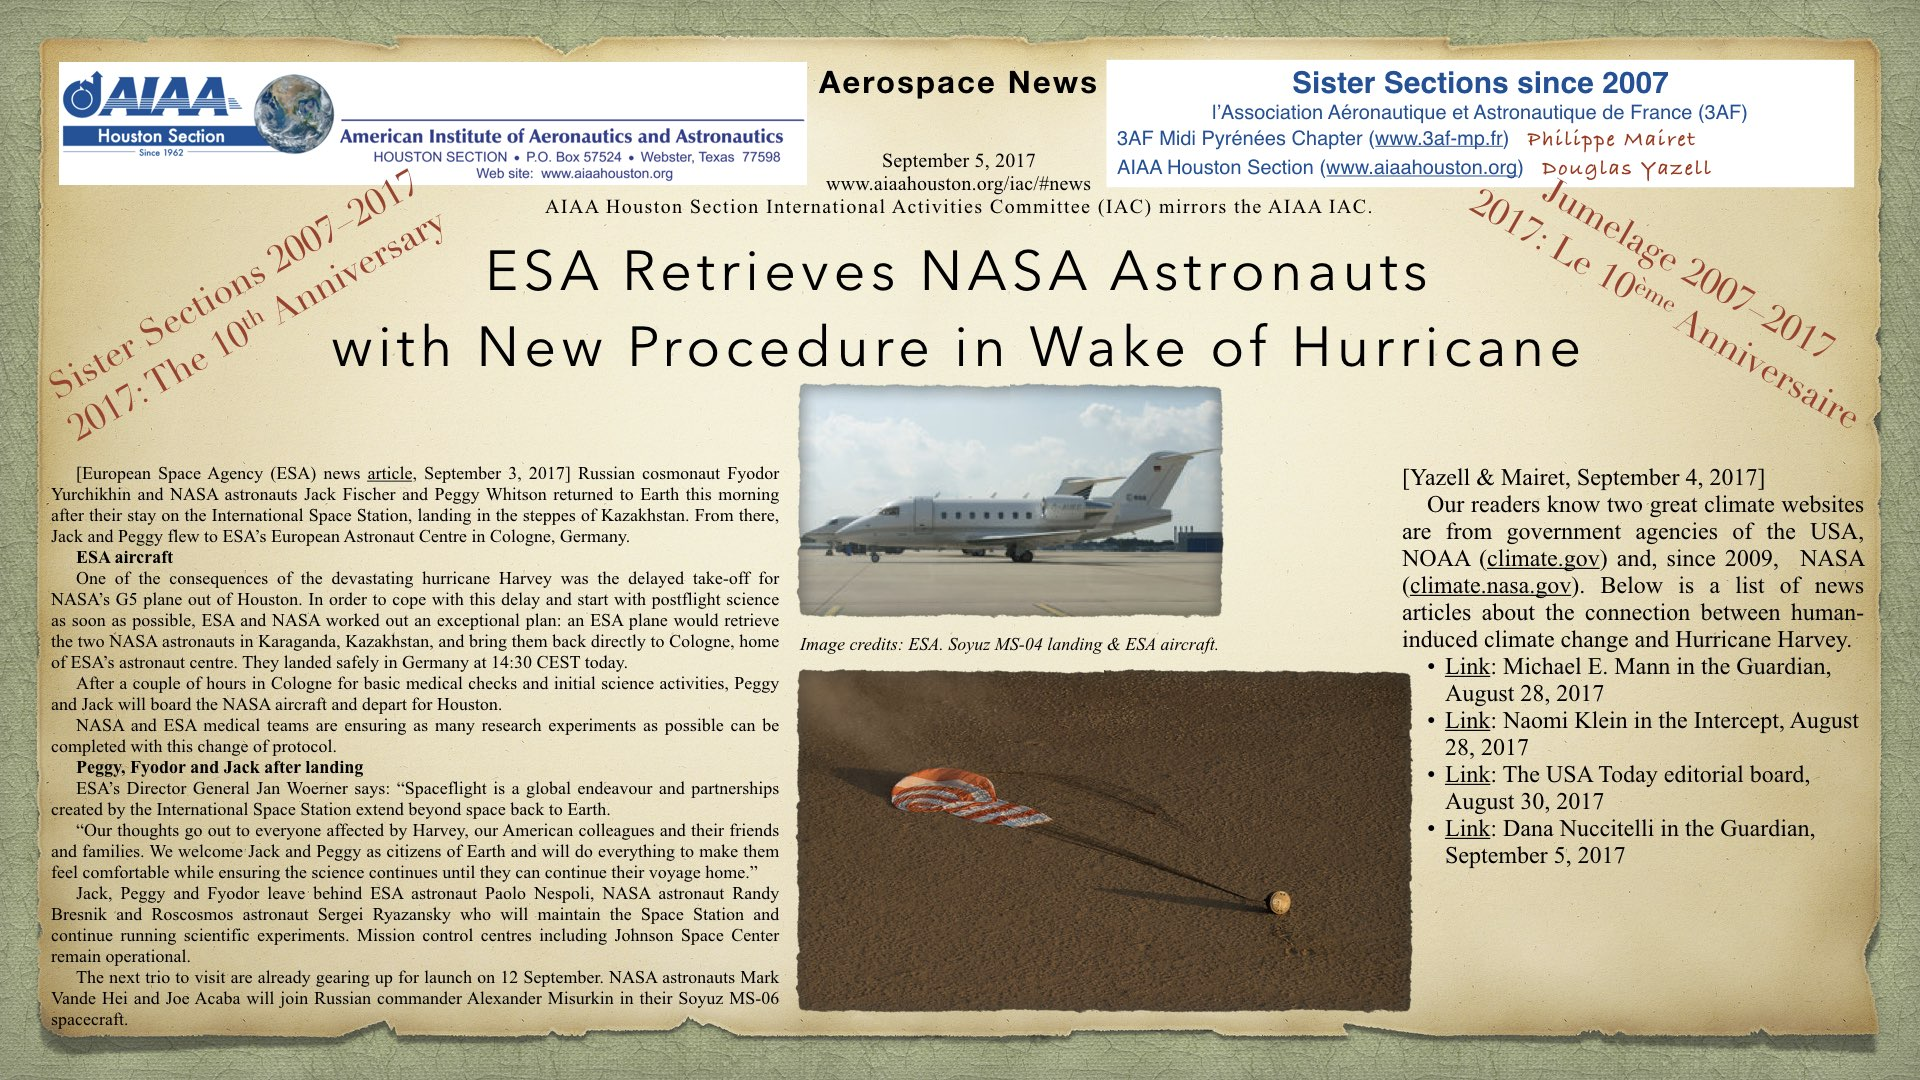 Above: ESA Retrieves NASA Astronauts with New Procedure in Wake of Hurricane, a news article from the European Space Agency (ESA), September 3, 2017, with the connection between the human-induced climate crisis and Hurricane Harvey, by Douglas Yazell & Philippe Mairet. (Click to zoom.)